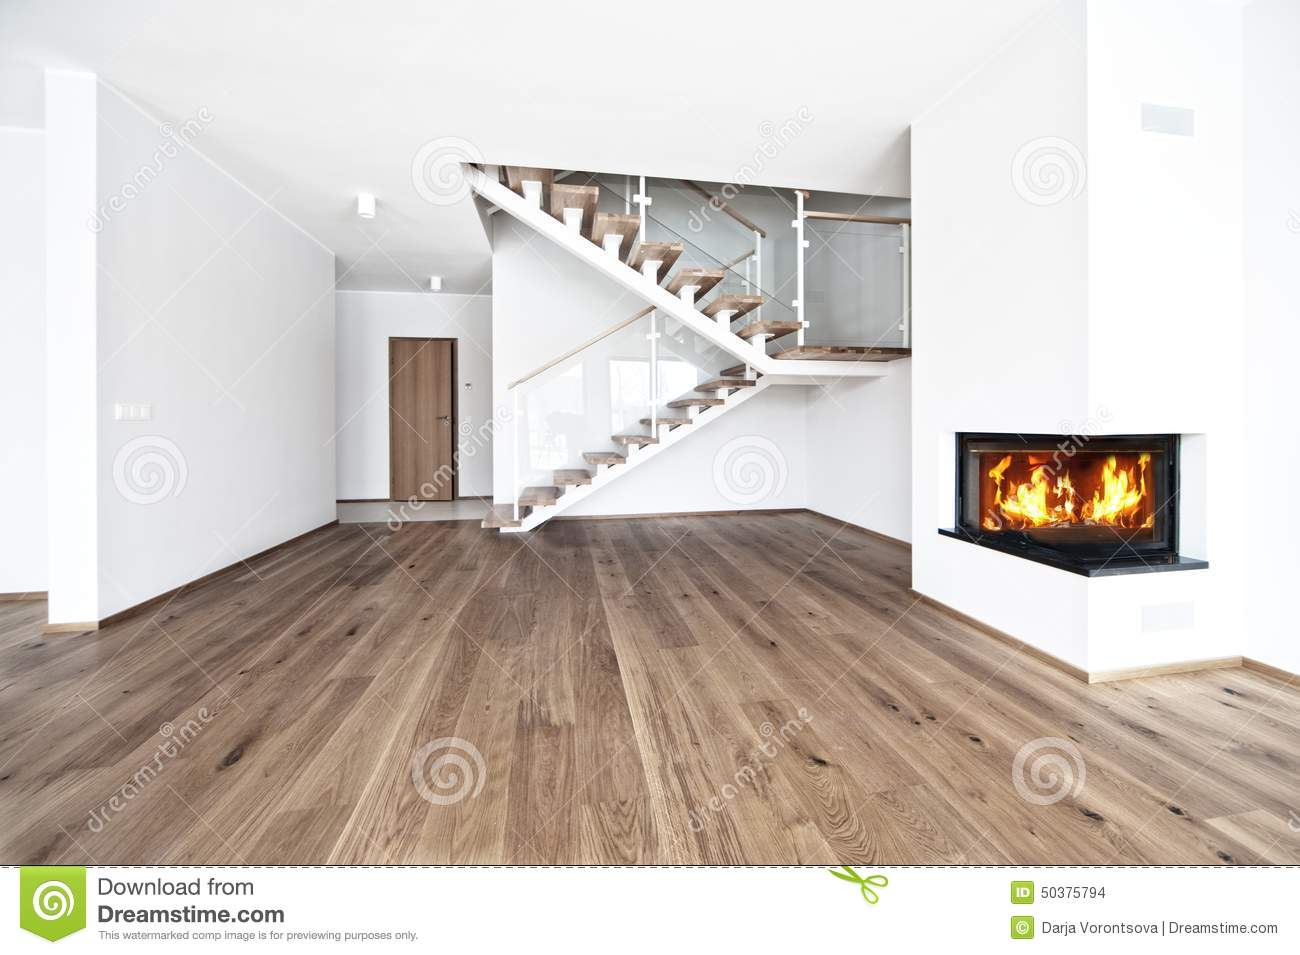 Empty room with fire place stock photo. Image of domestic - 50375794